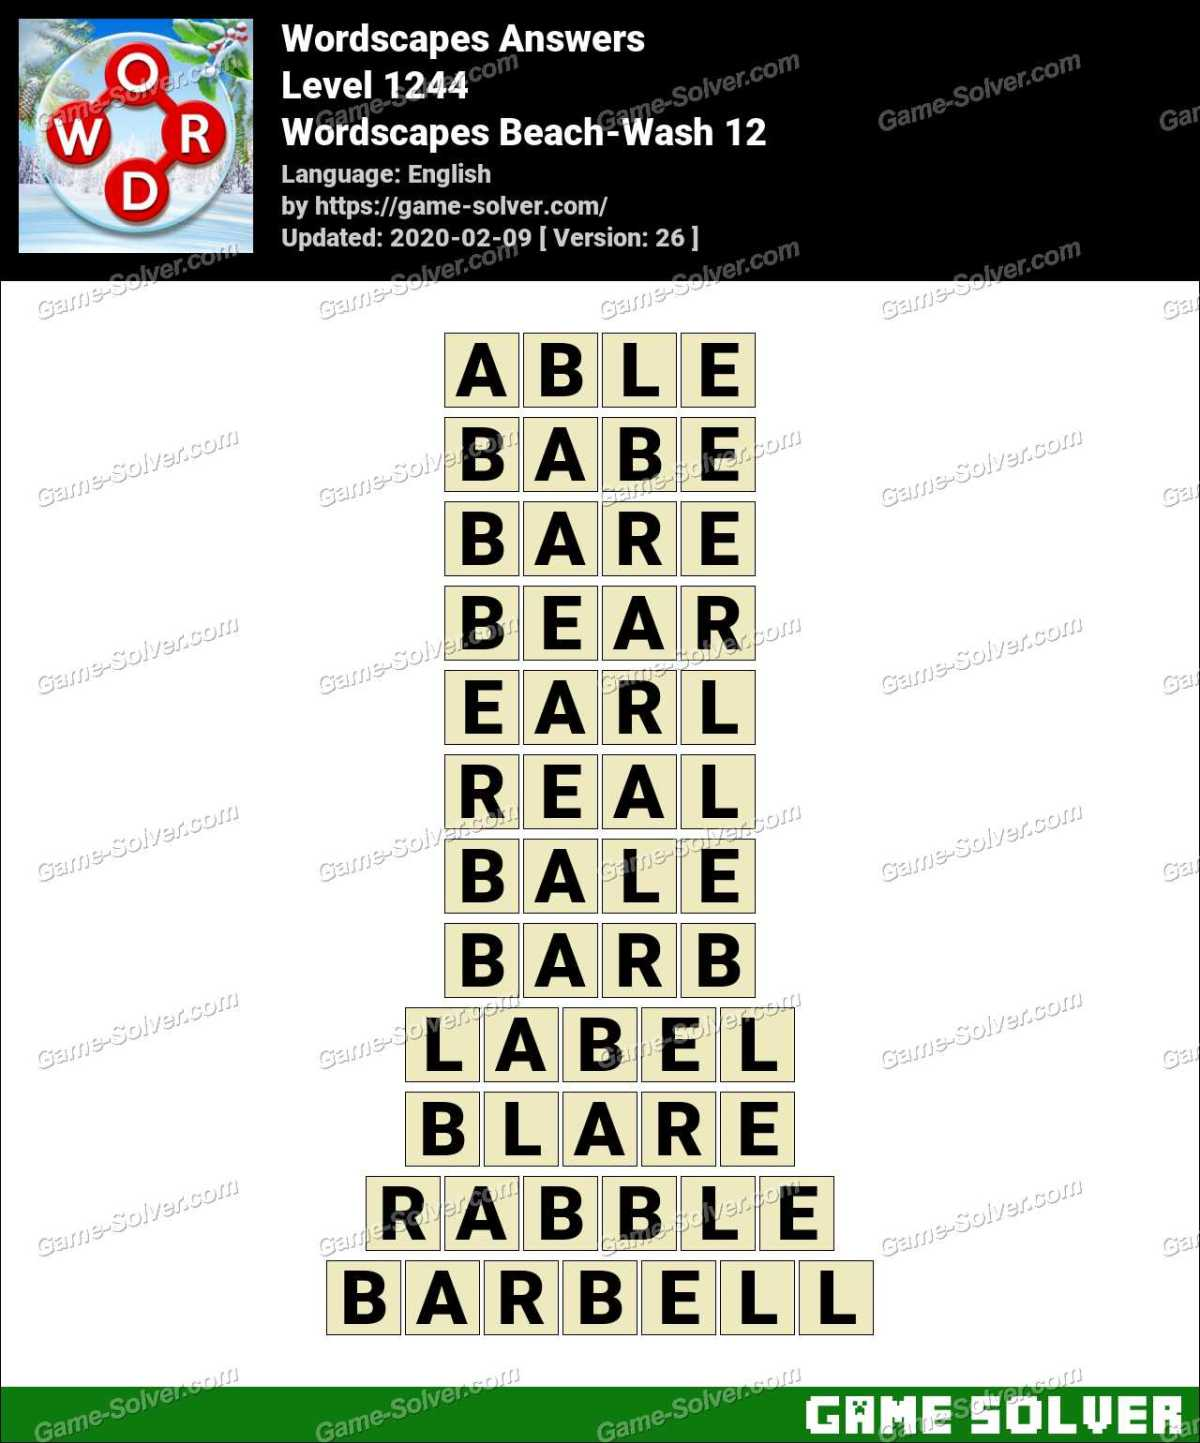 Wordscapes Beach-Wash 12 Answers